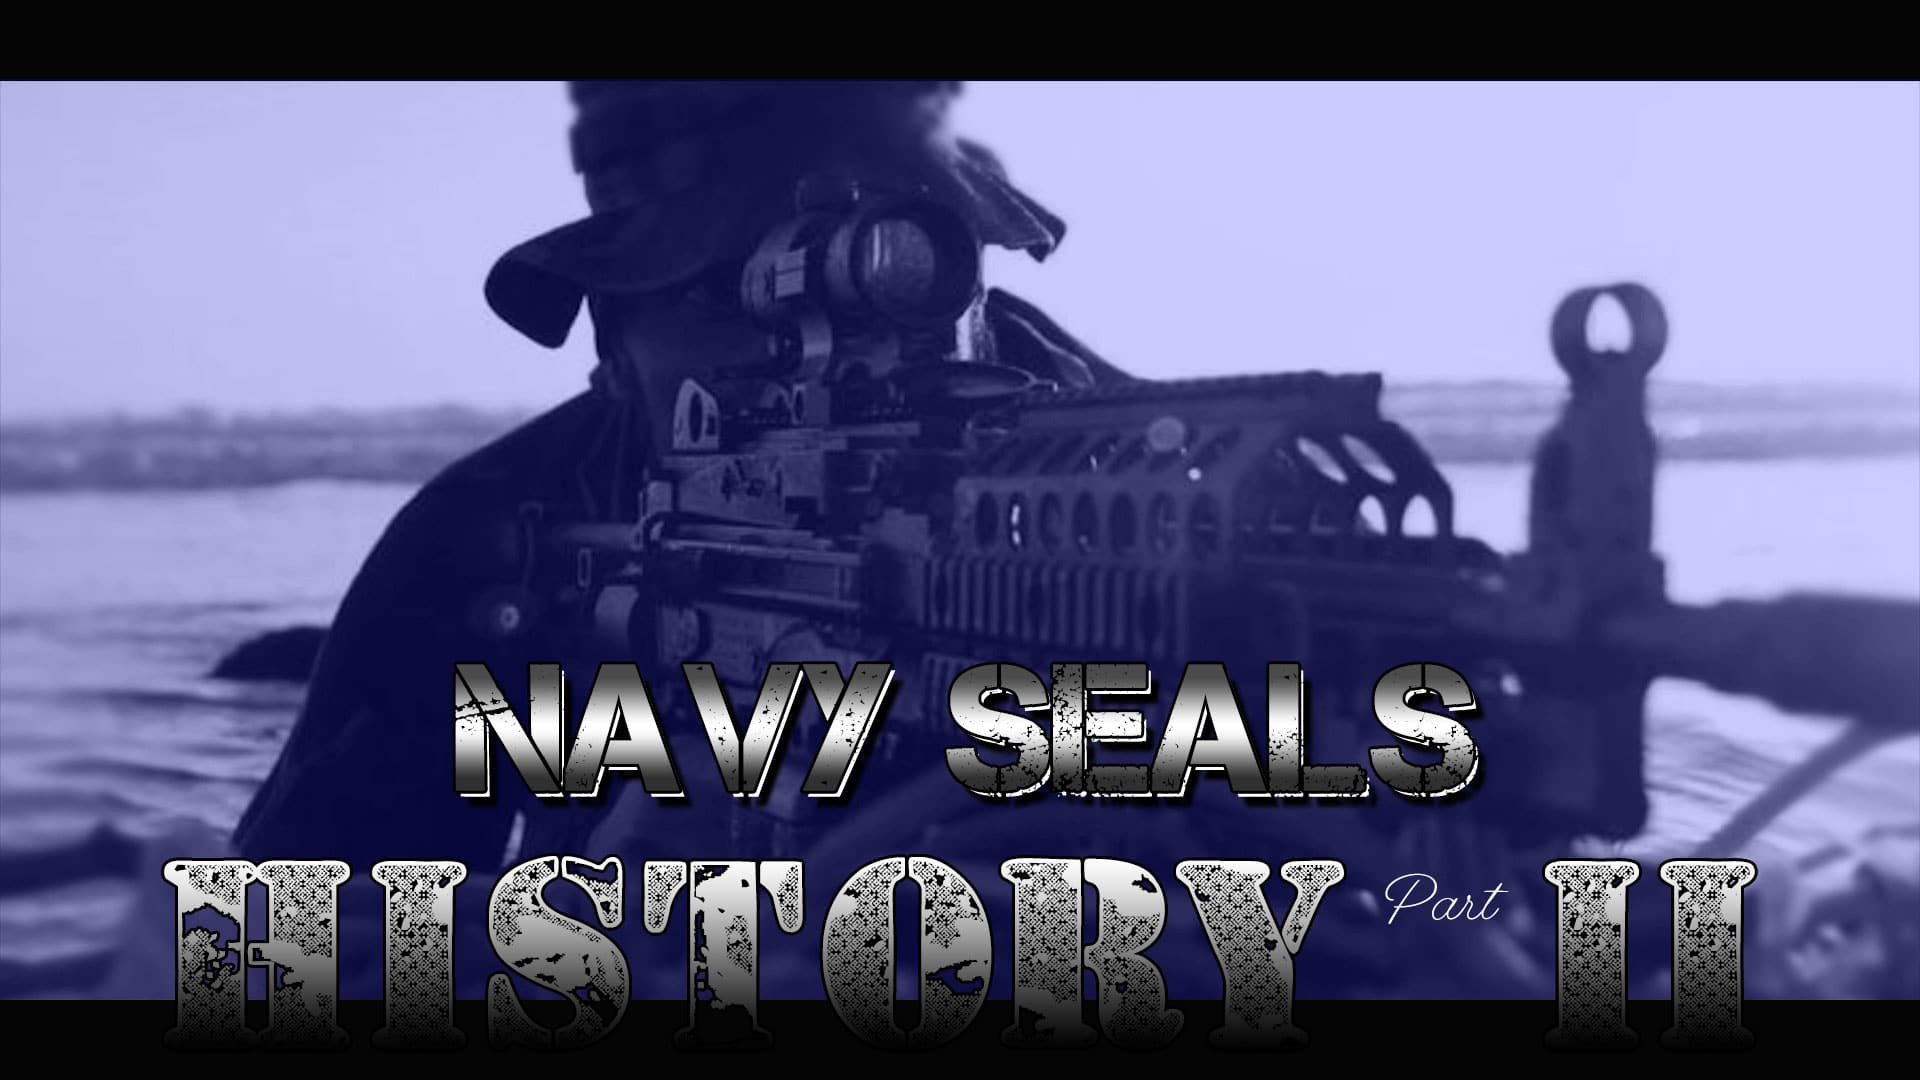 U.S. Navy Seals History - Part Two